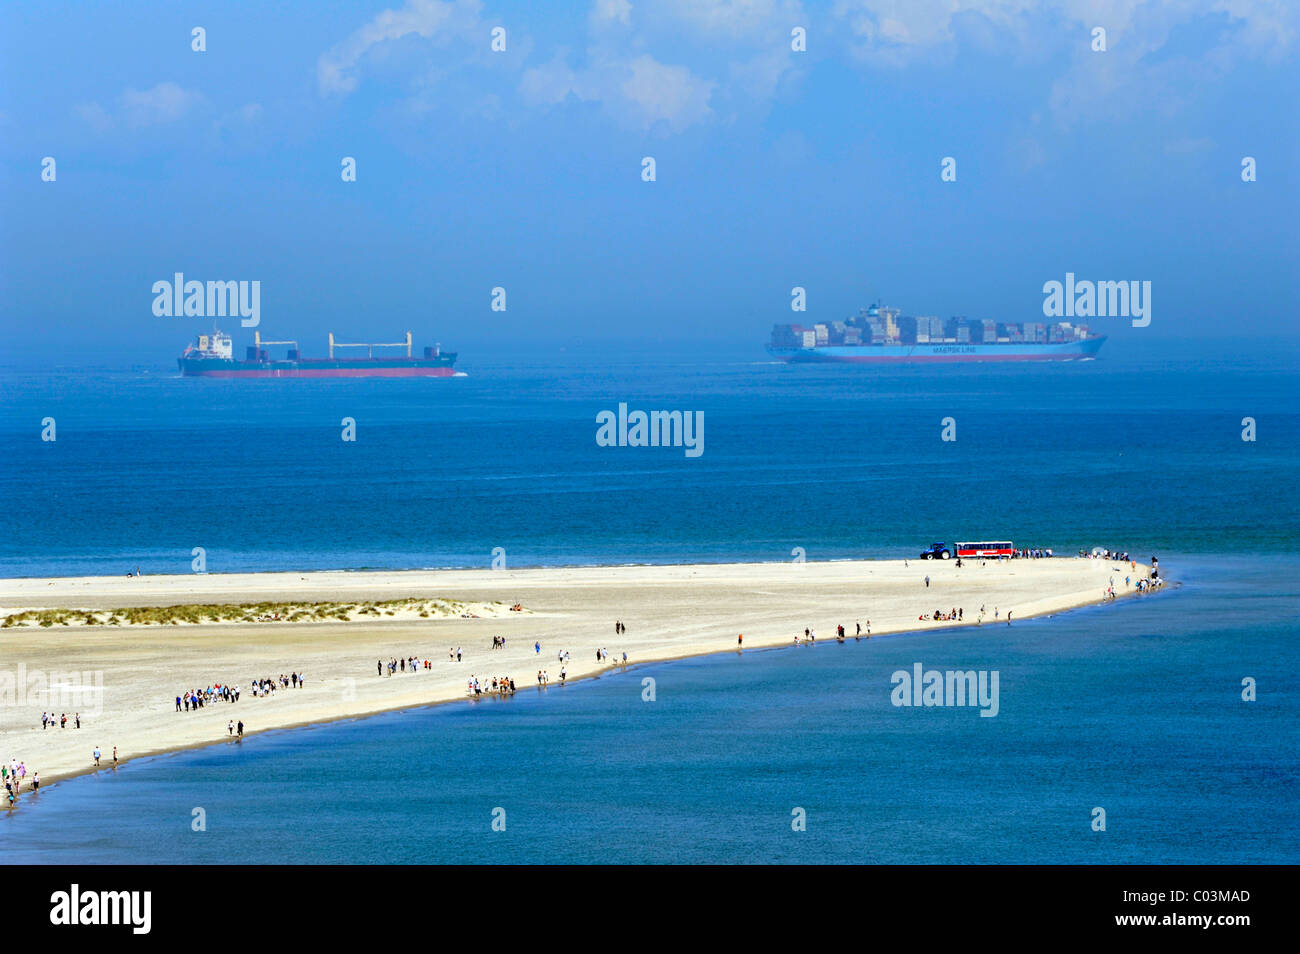 Headland with people where the North Sea and the Baltic Sea meet, container ships at back, Skagen, Jutland, Denmark, - Stock Image